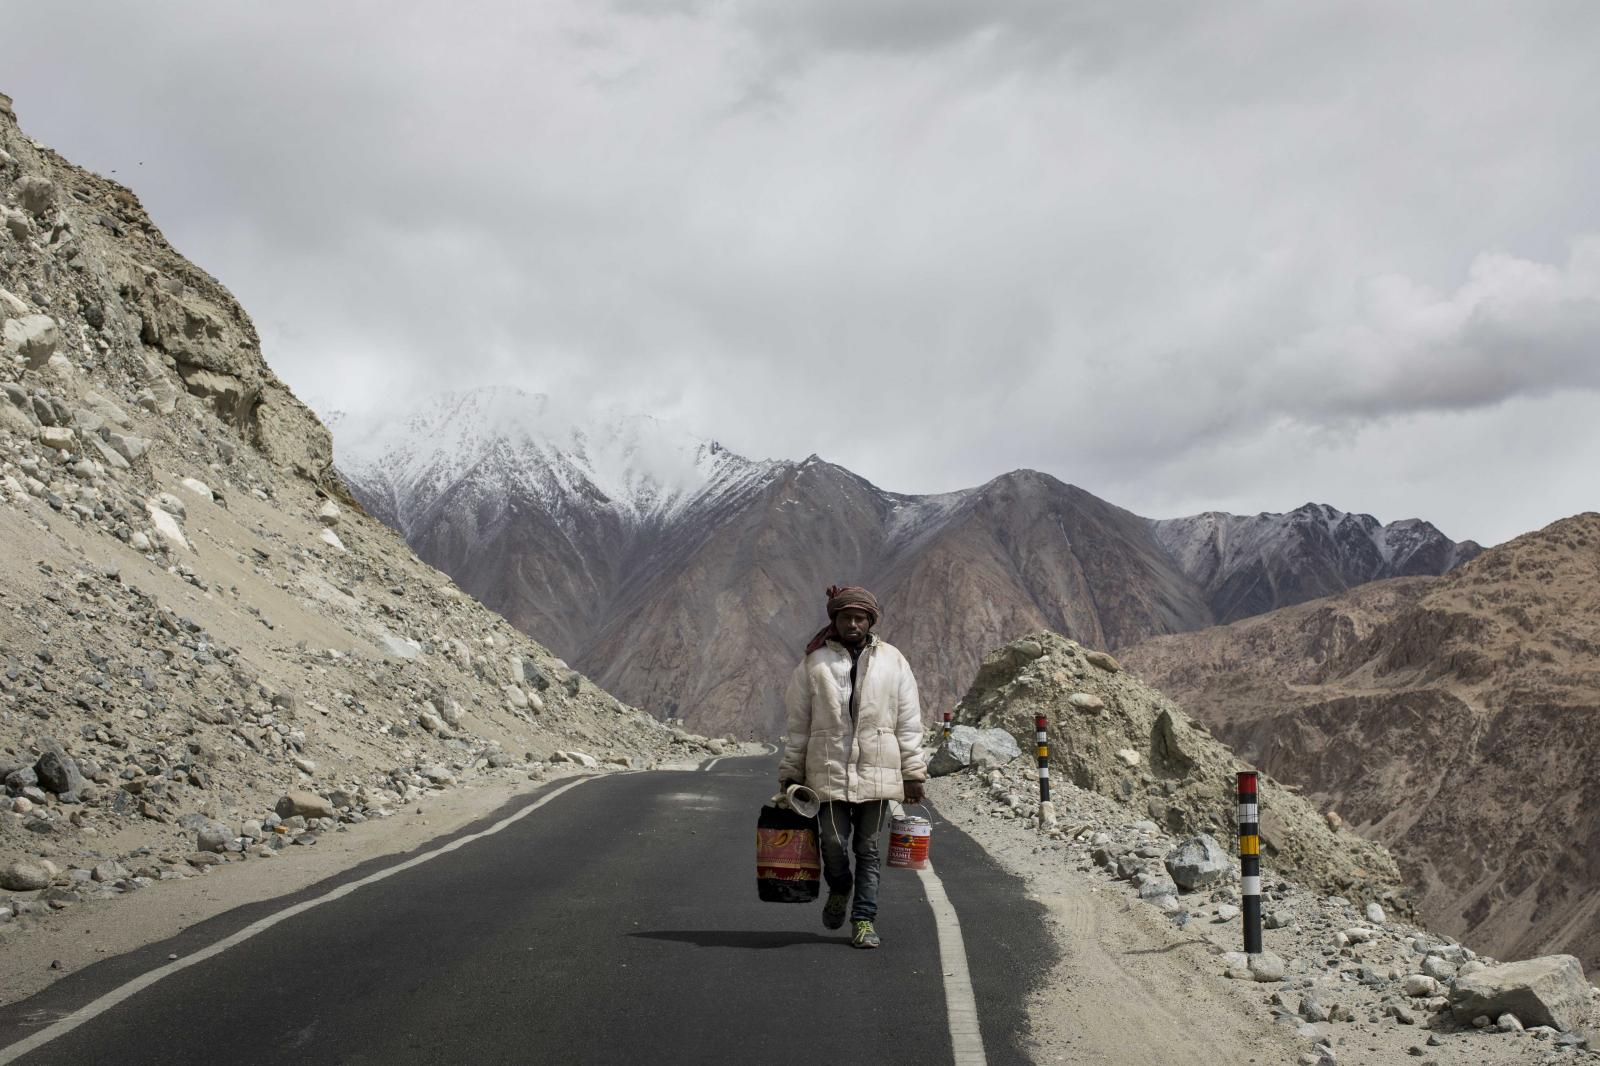 A road maintenance worker from India's low-lying eastern Jharkhand state, carries buckets of paint to restore road markers along Pangong Lake road near the Chang La pass in northern India's Ladakh region.